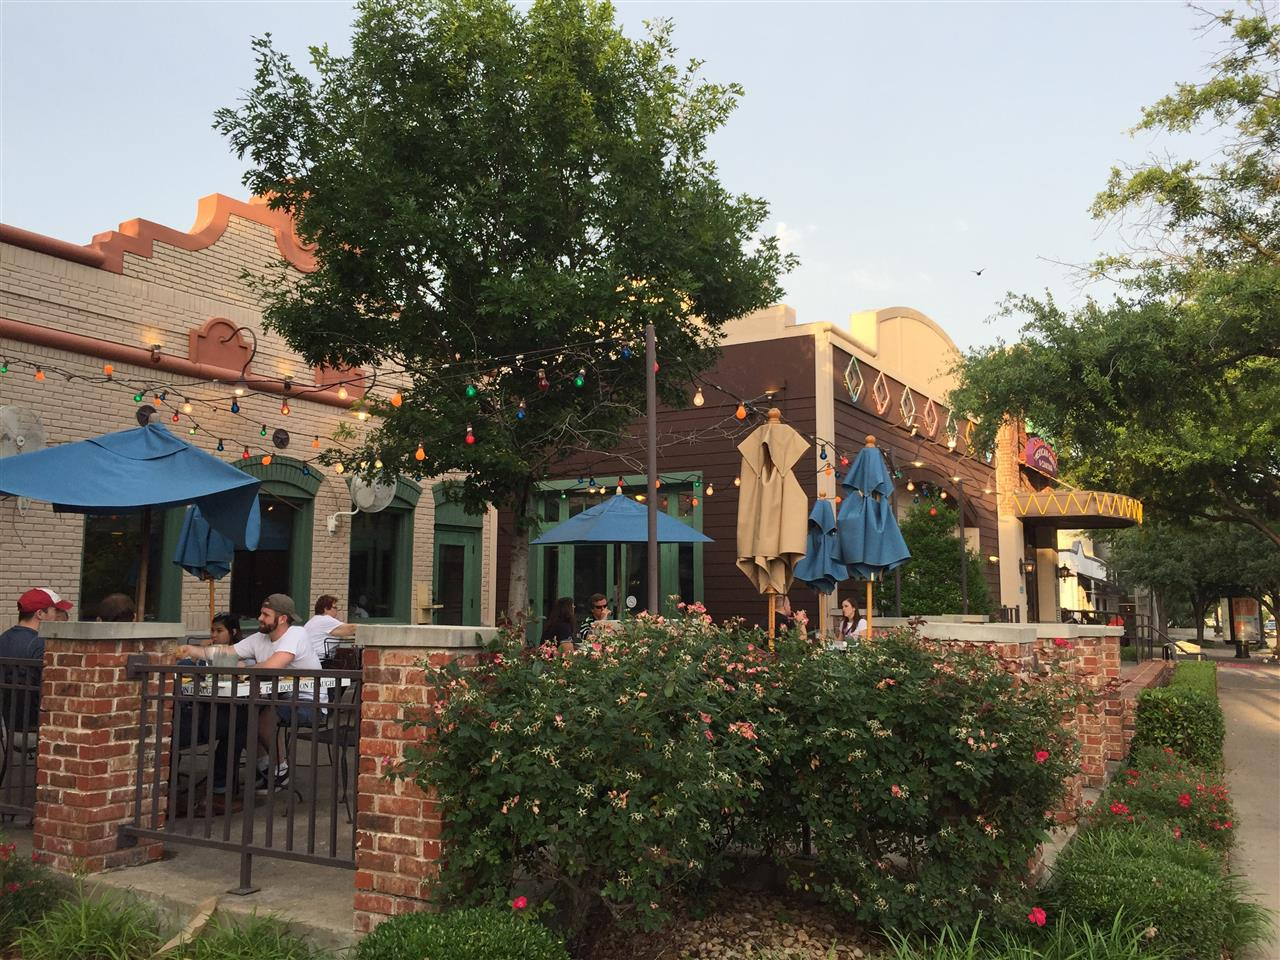 "#Dallas, #Texas, Knox Street dining ""al fresco"" at On the Border, #Uptown, #Oaklawn"